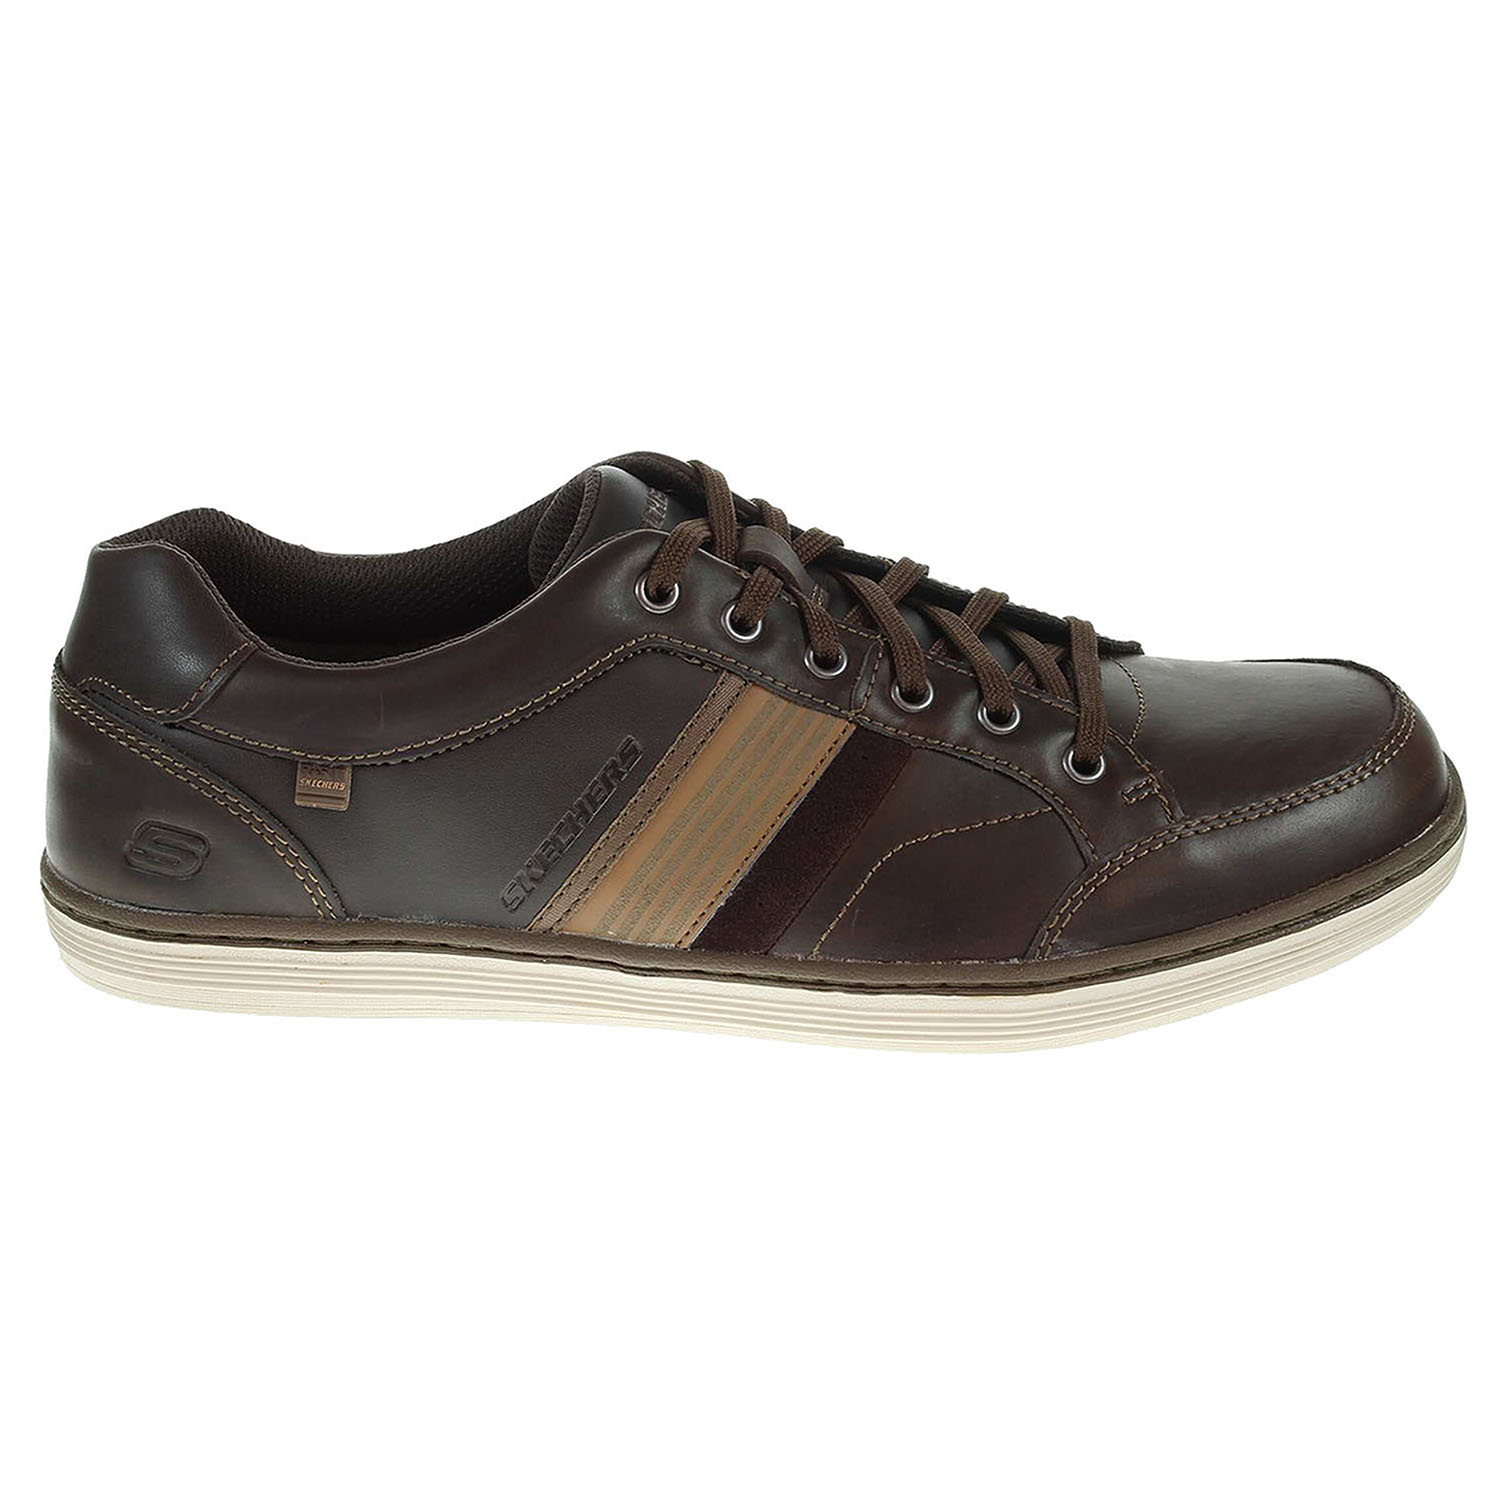 Skechers Duarte brown 44